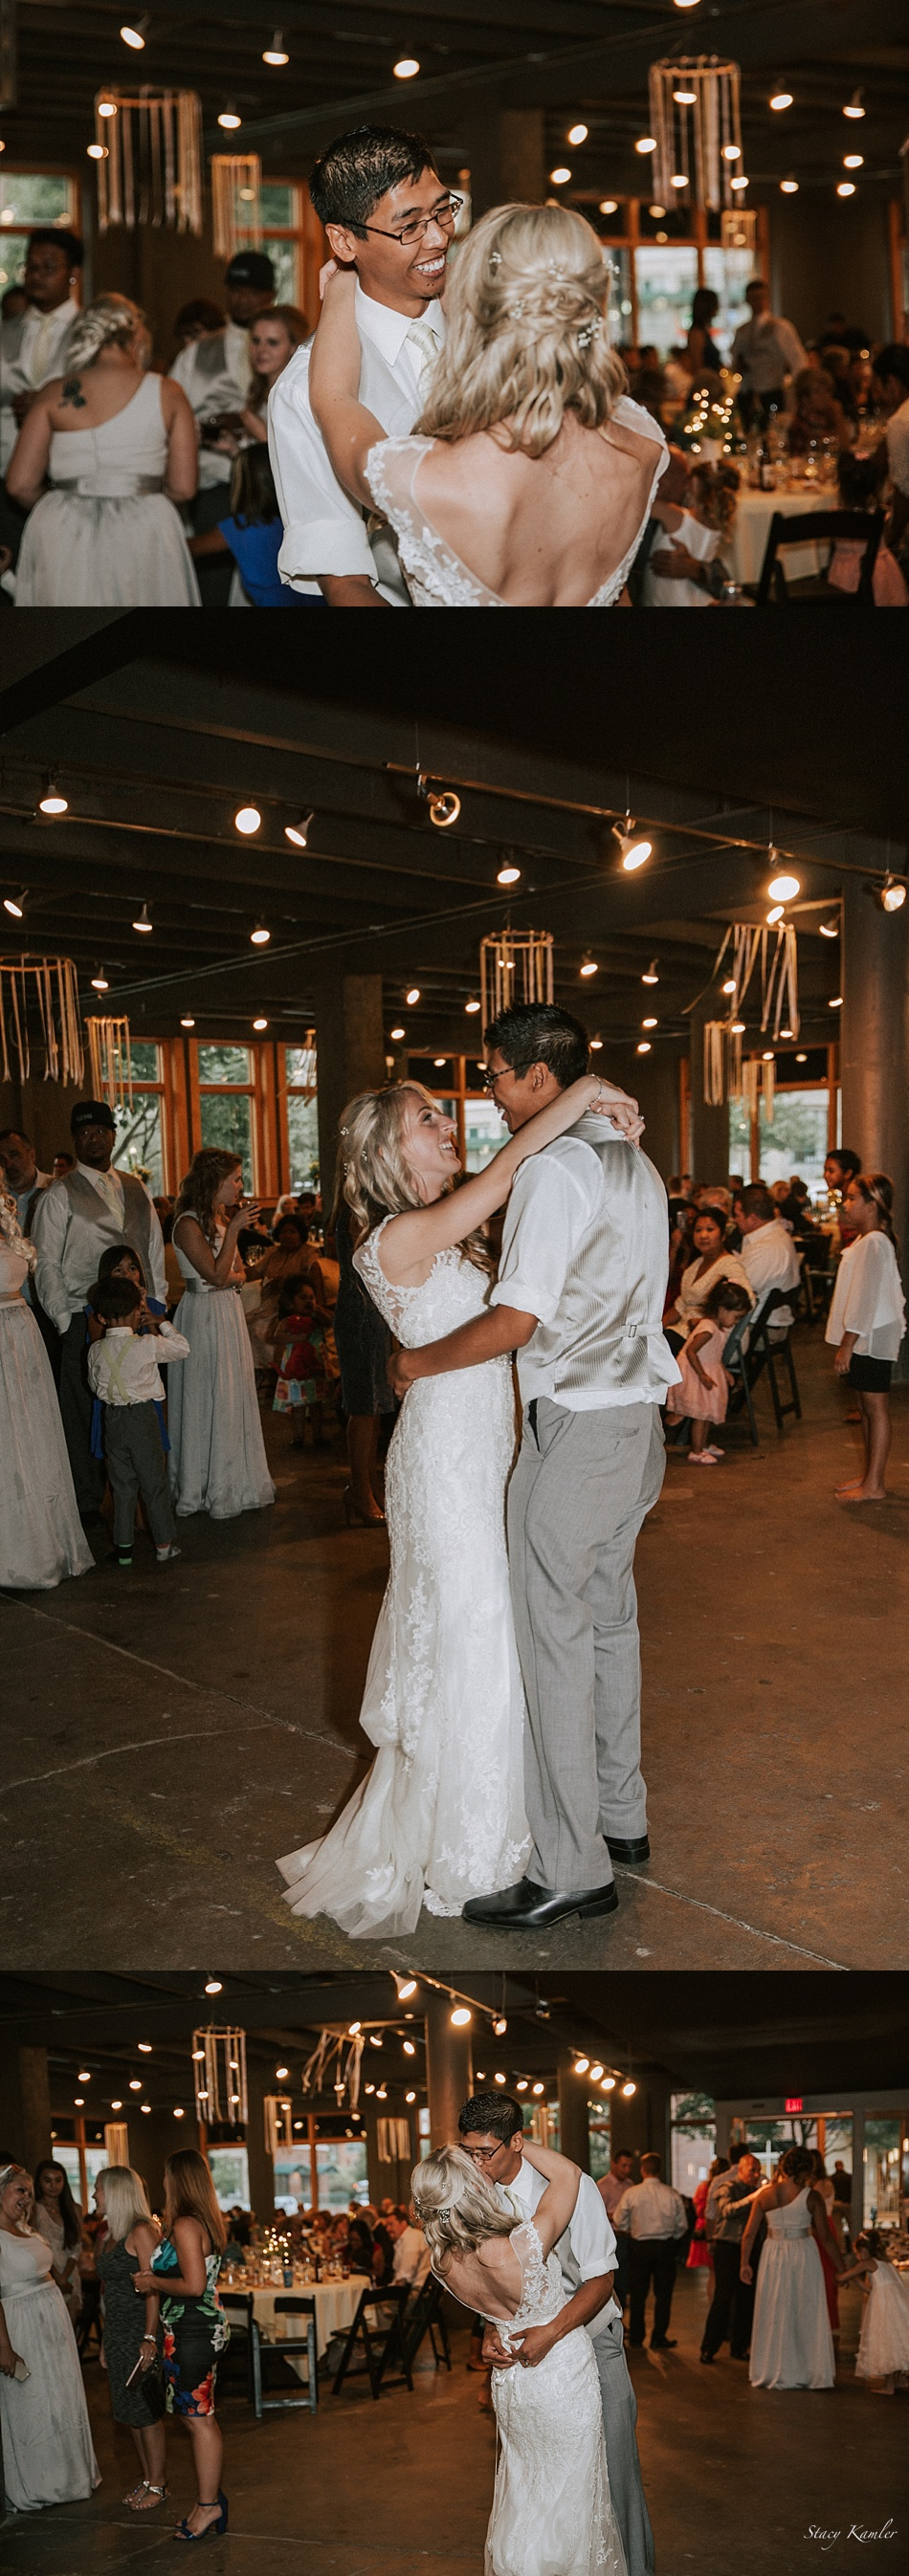 First Dance at One Thousand Reception